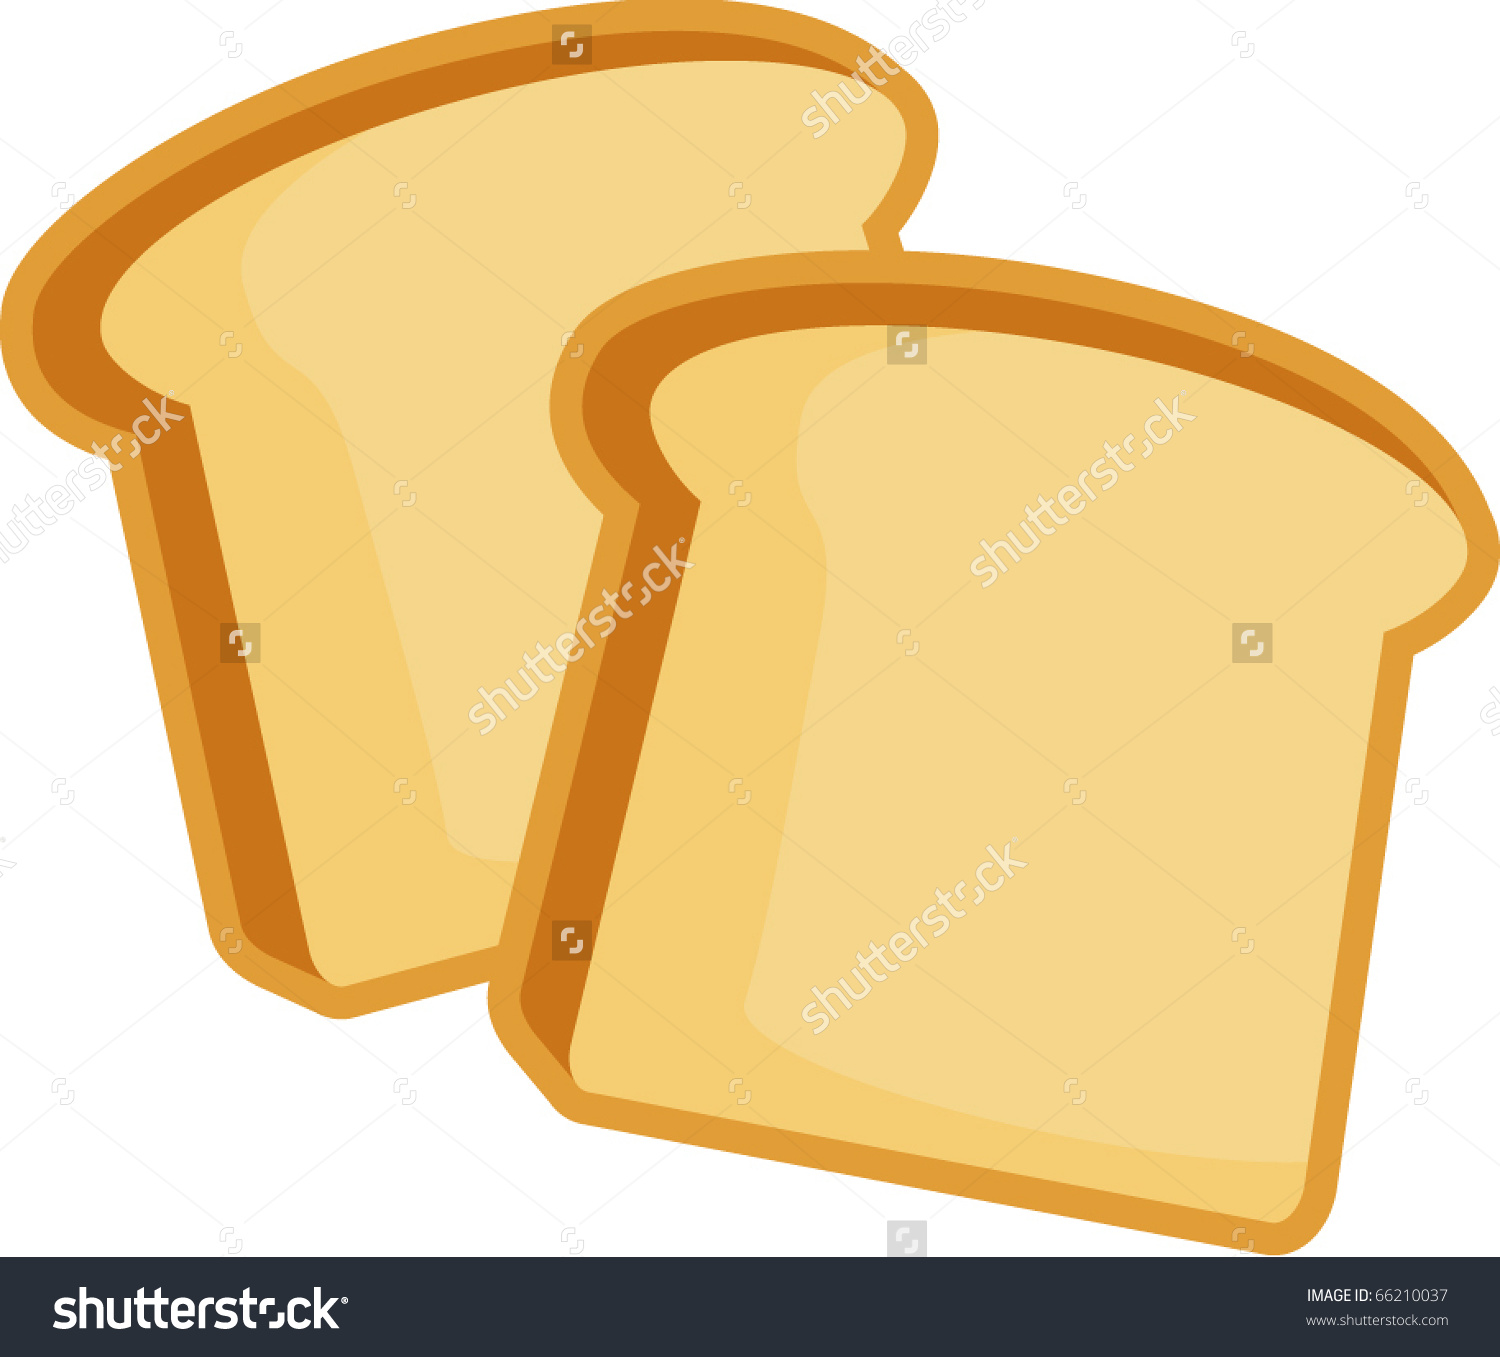 Group toasted clipground. Bread clipart vector